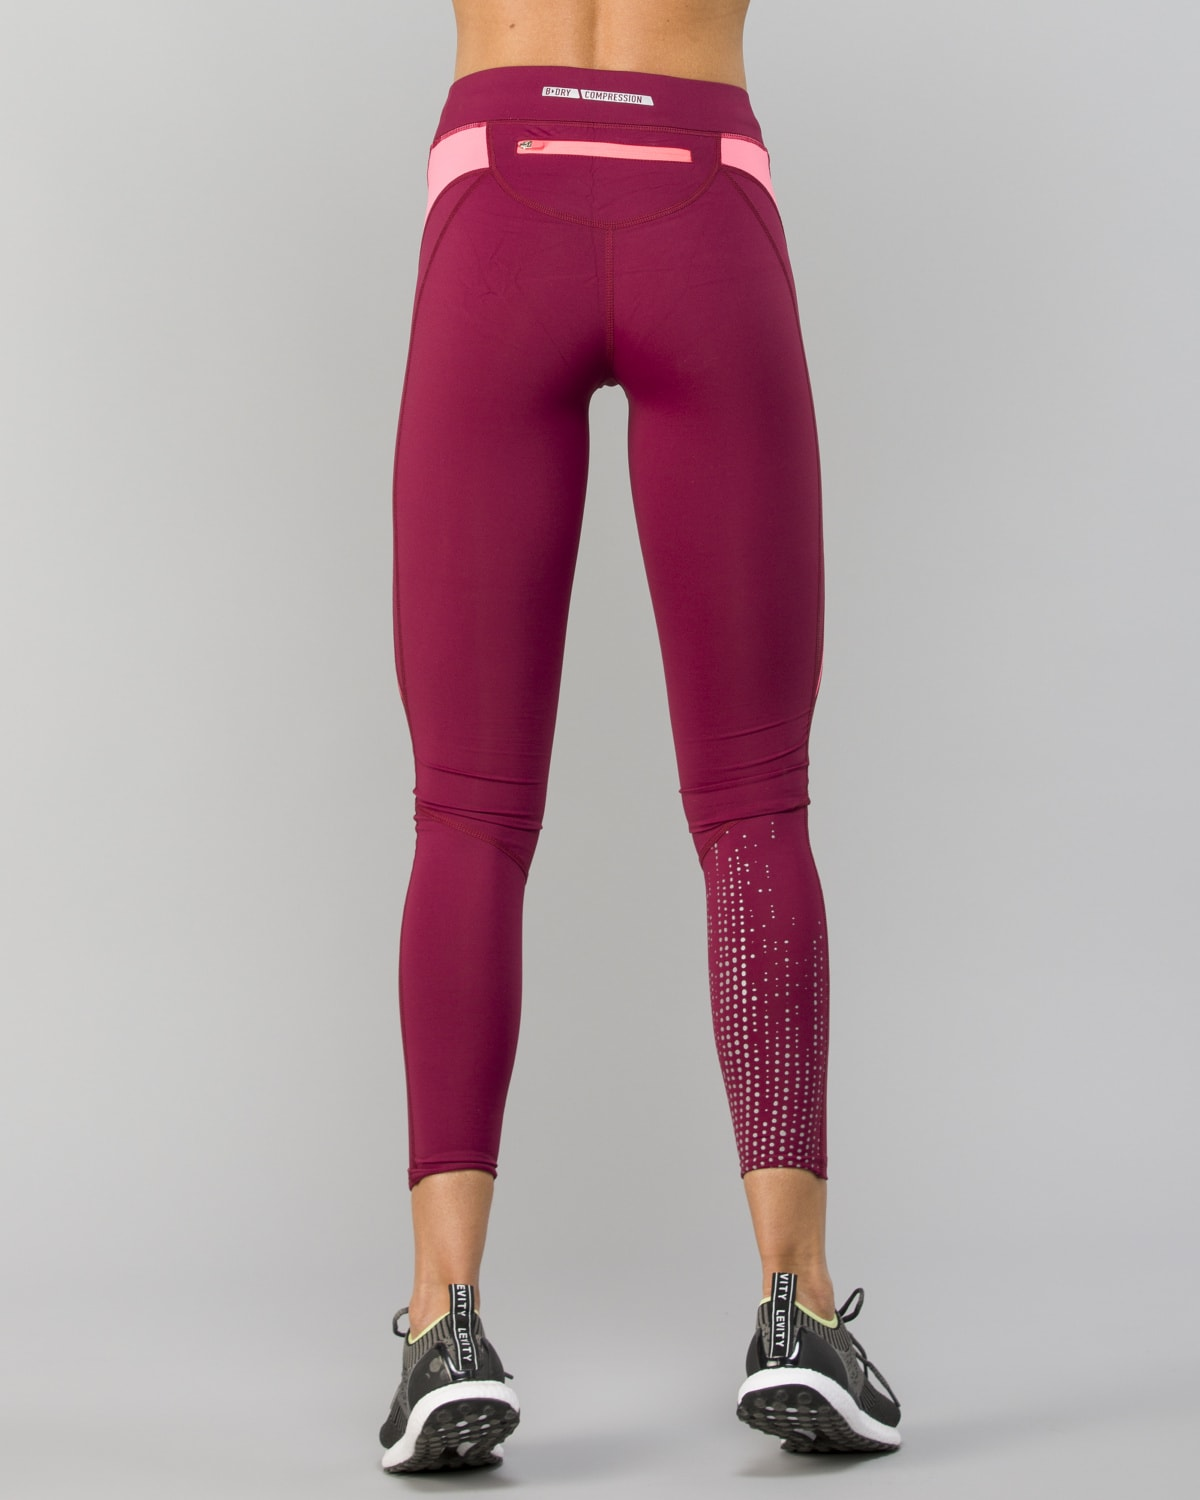 Only-Play-Vibe-Run-Compression-Tights2